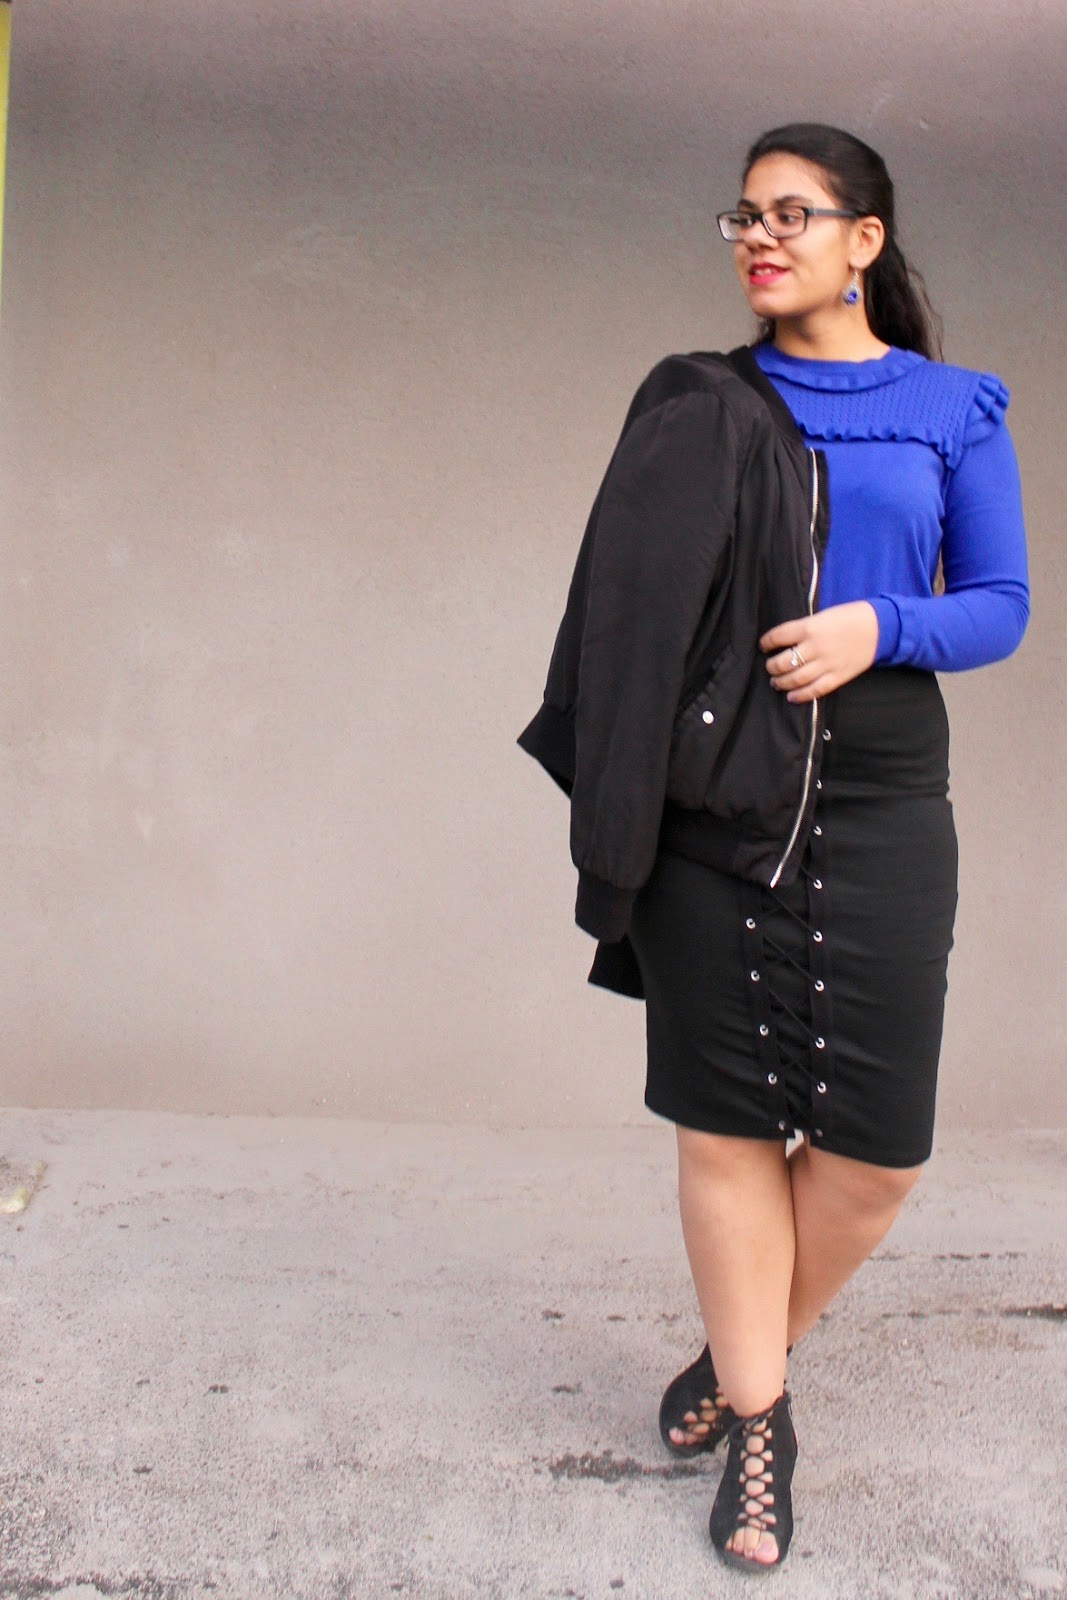 Black & Blue Outfit Inspiration